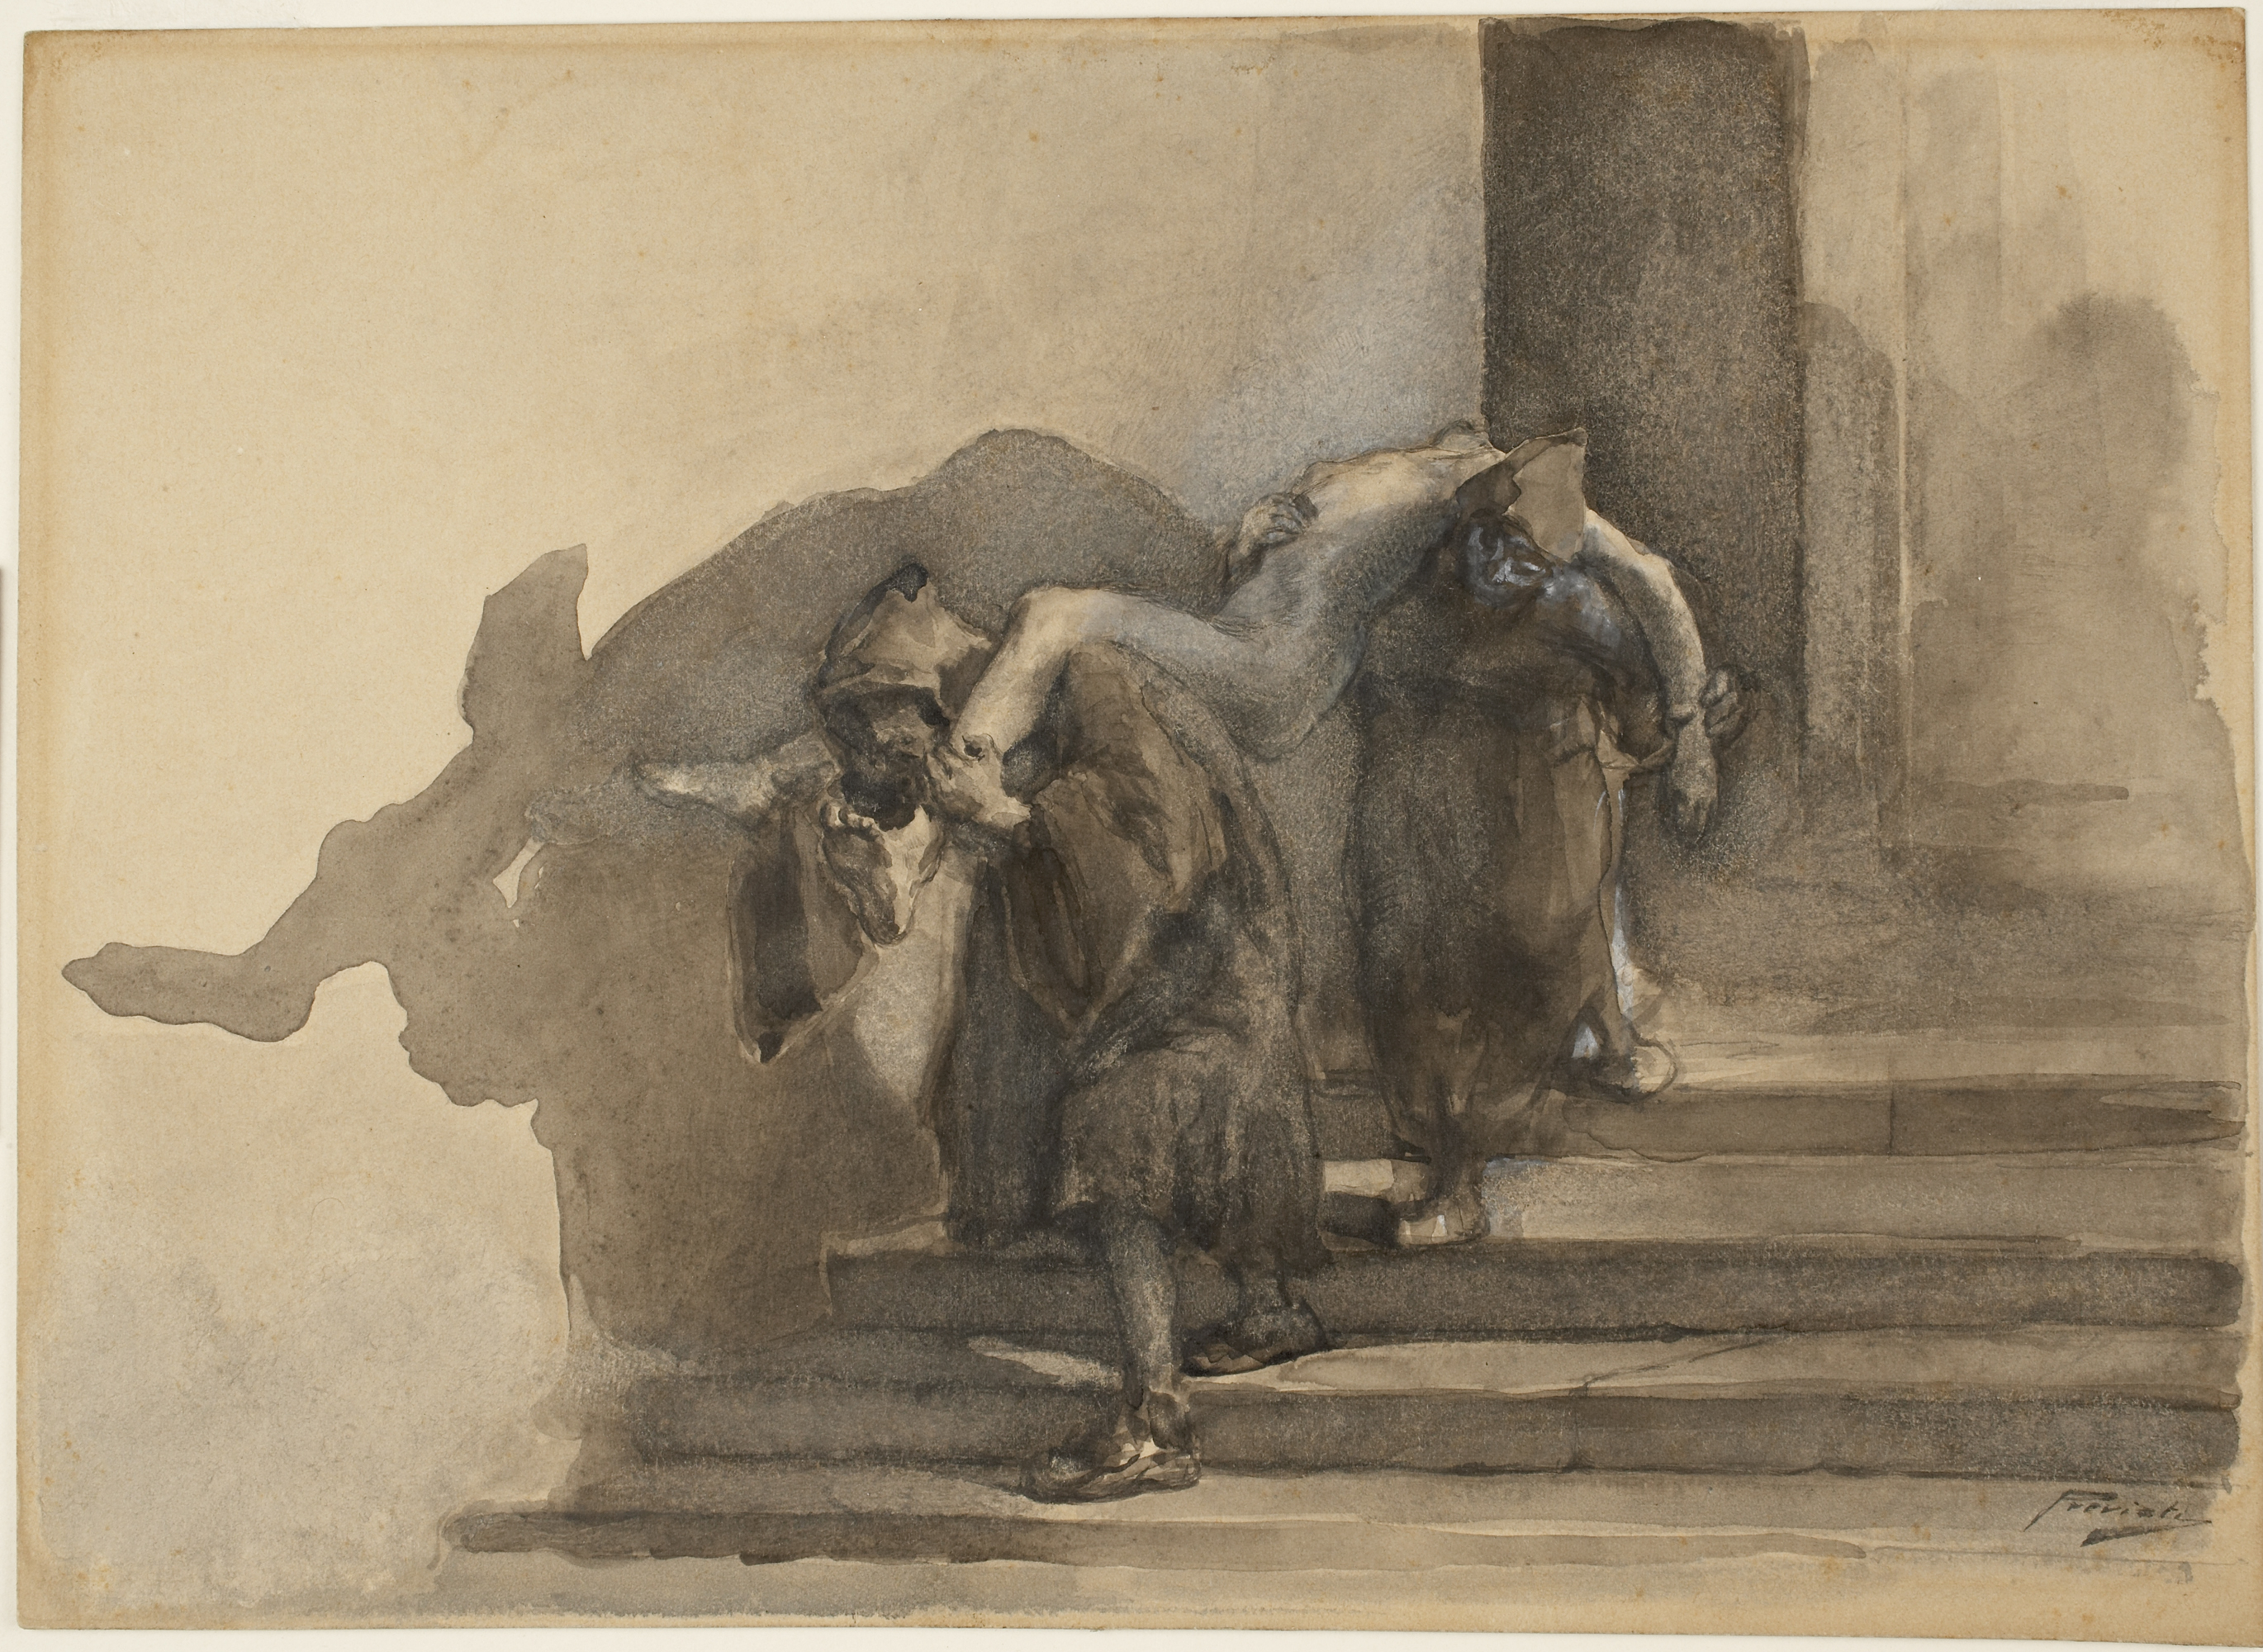 Gaetano Previati (Italian, 1852–1920), The Monatti (illustration to Alessandro Manzoni's I Promessi Sposi), ca. 1895–99. watercolor, heightened with white gouache, on light brown wove, 23.2 x 32.2 cm. Museum purchase, Felton Gibbons Fund (2007-16)